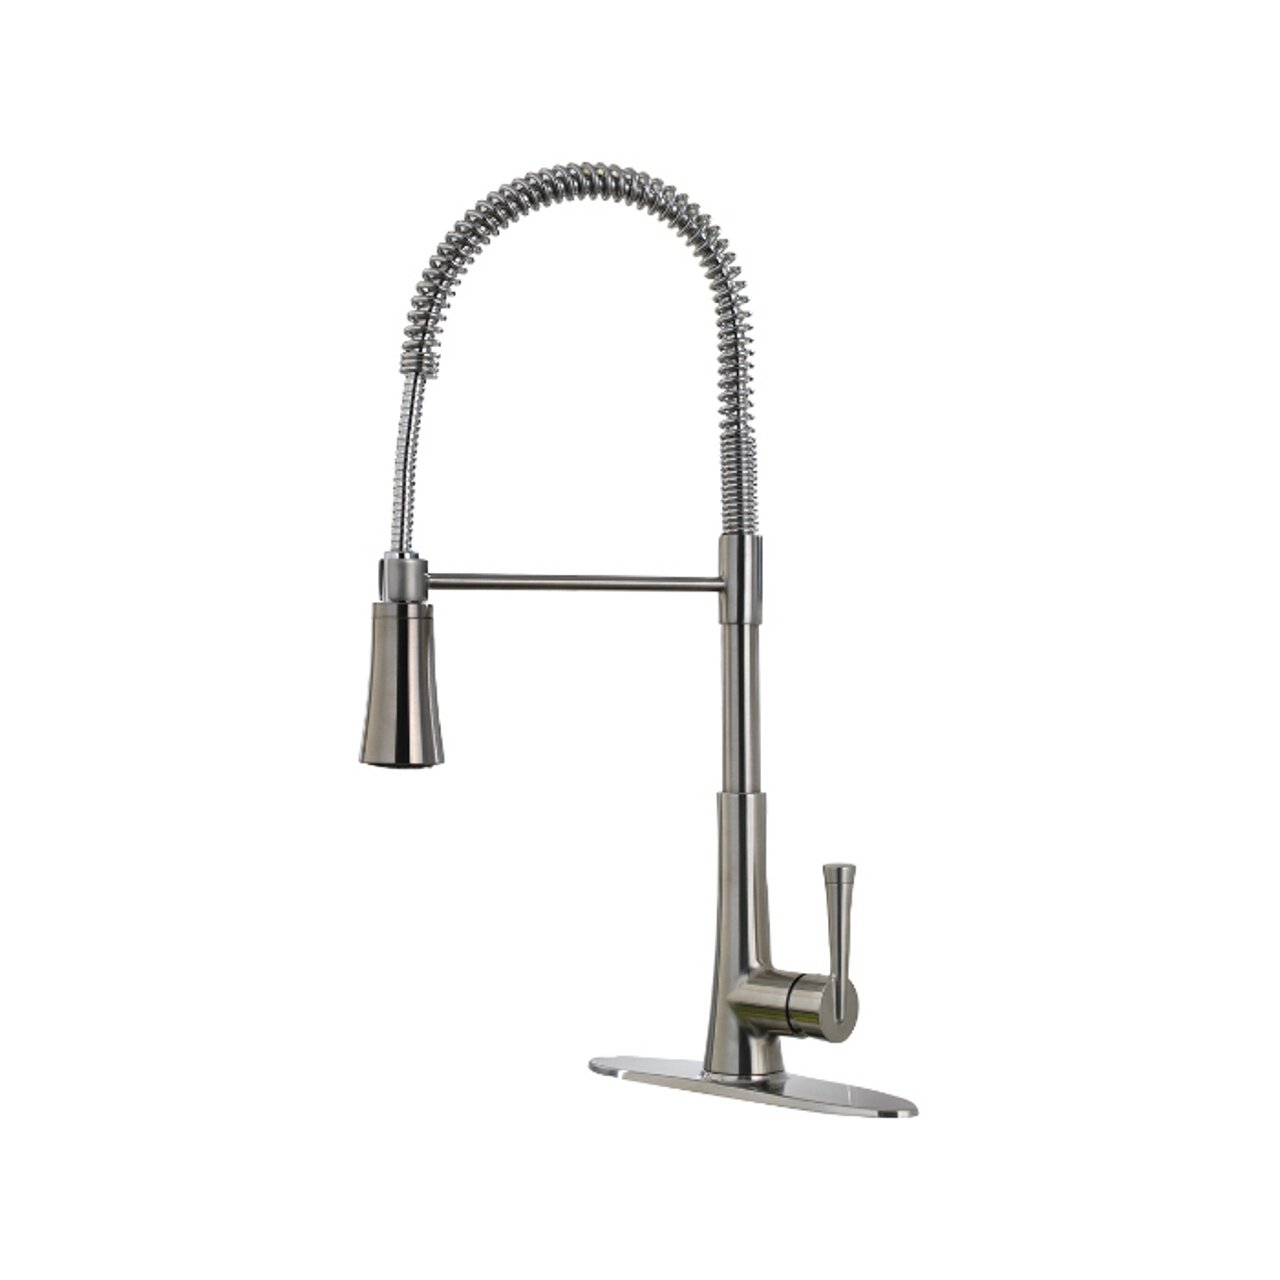 Pfister lg529mcs zuri 1 handle pull down kitchen faucet stainless steel 1 8gpm amazon com